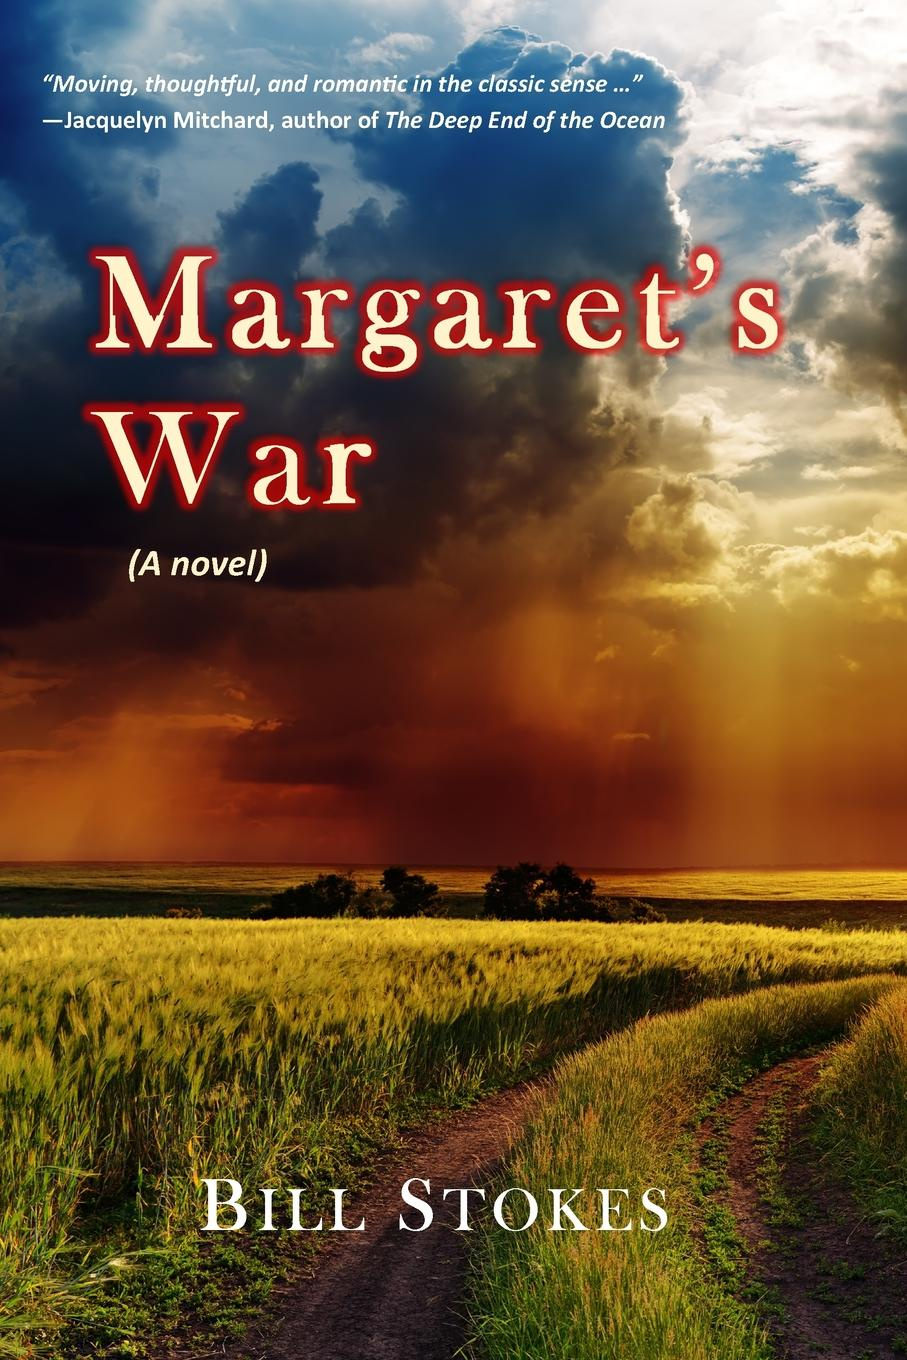 цена на Bill Stokes Margaret.s War